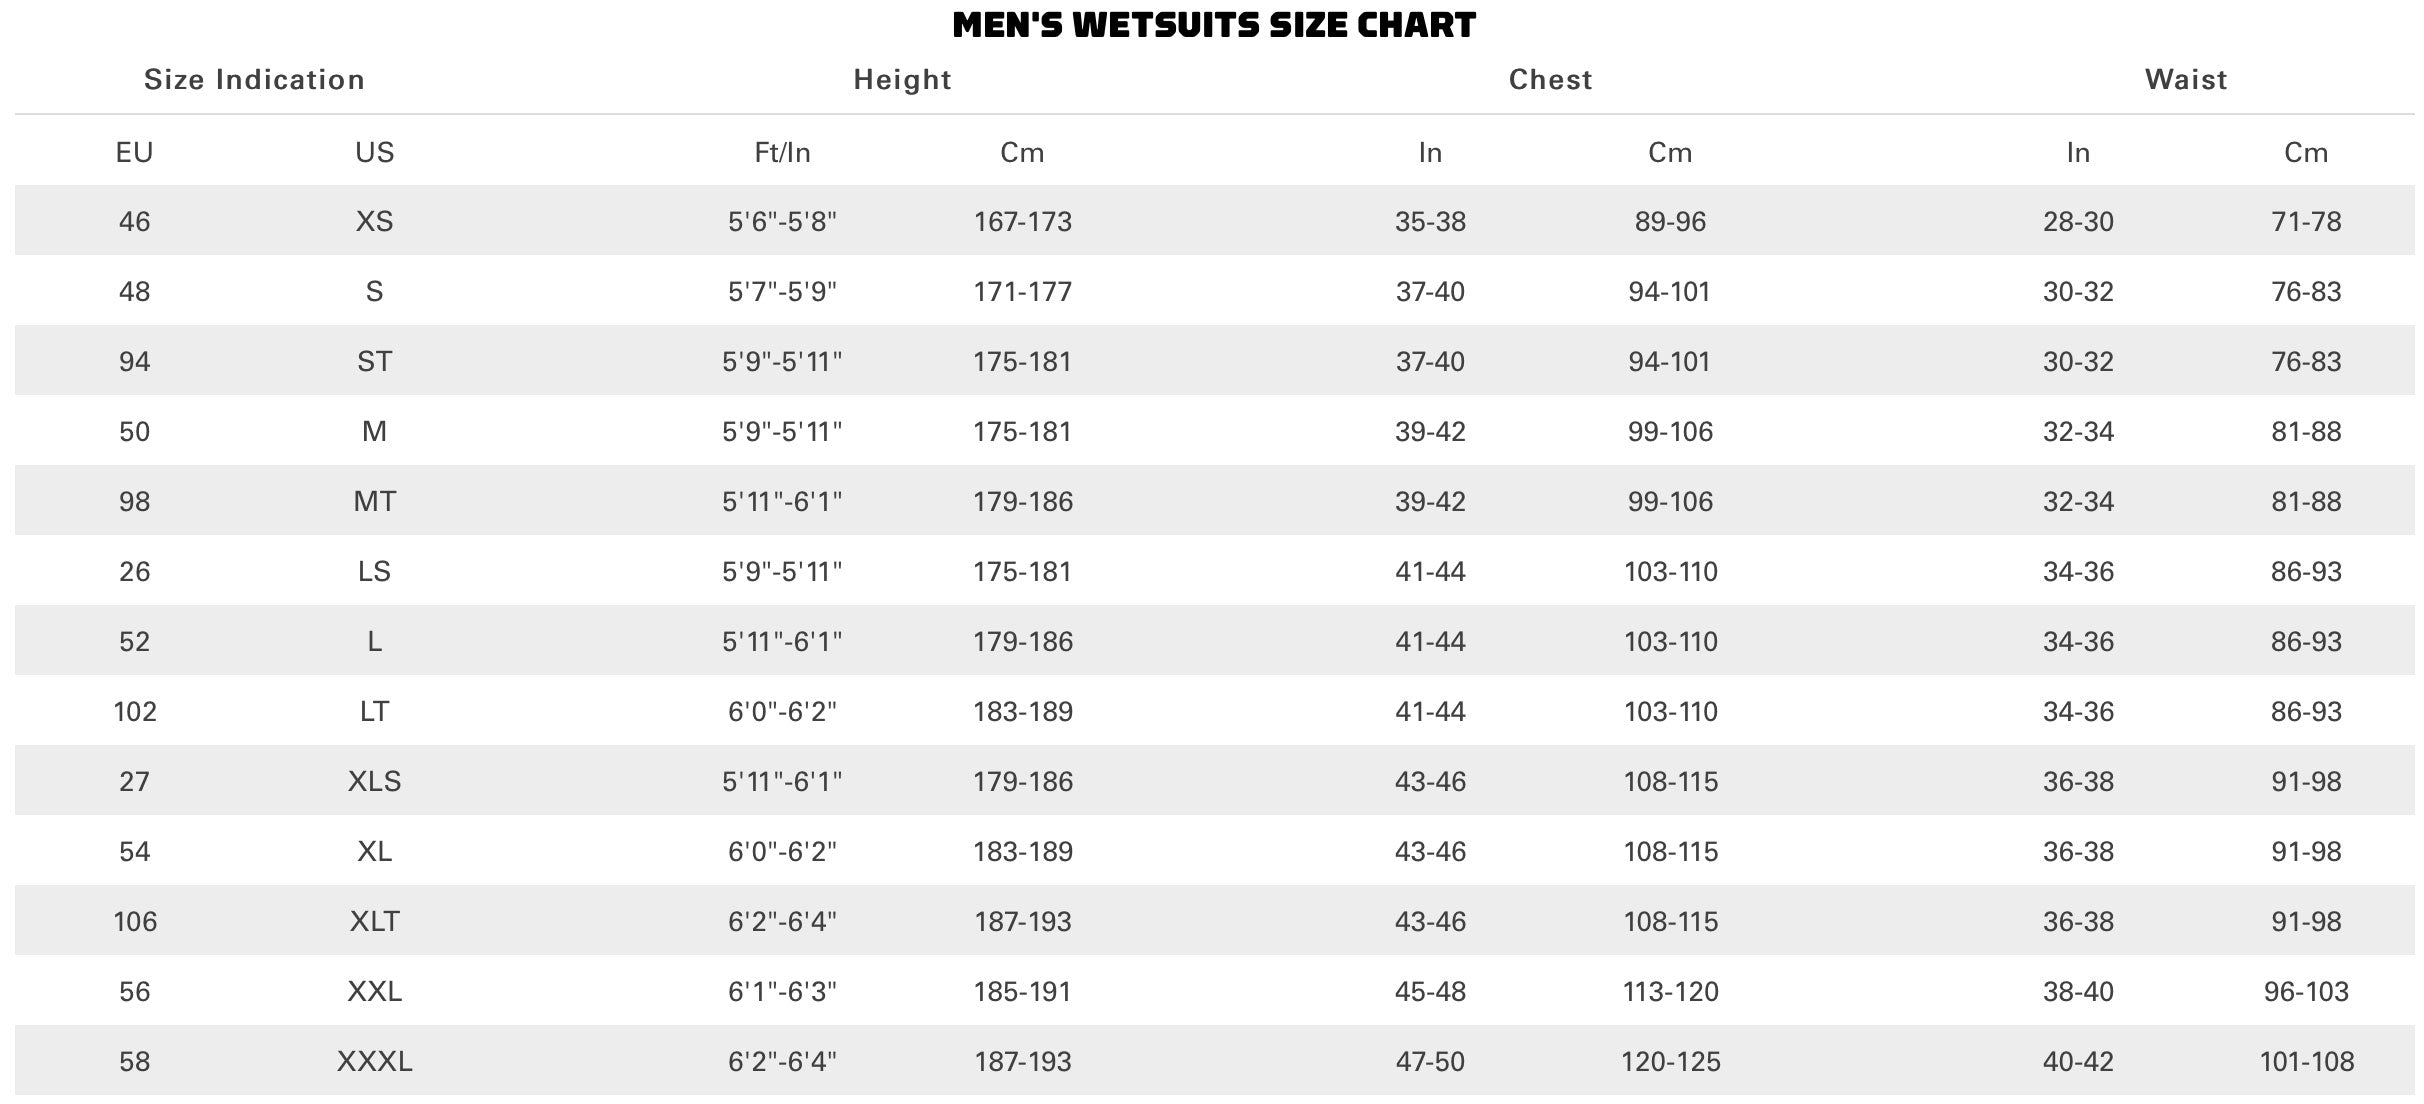 Neilpryde Wetsuit Size Guide 2019